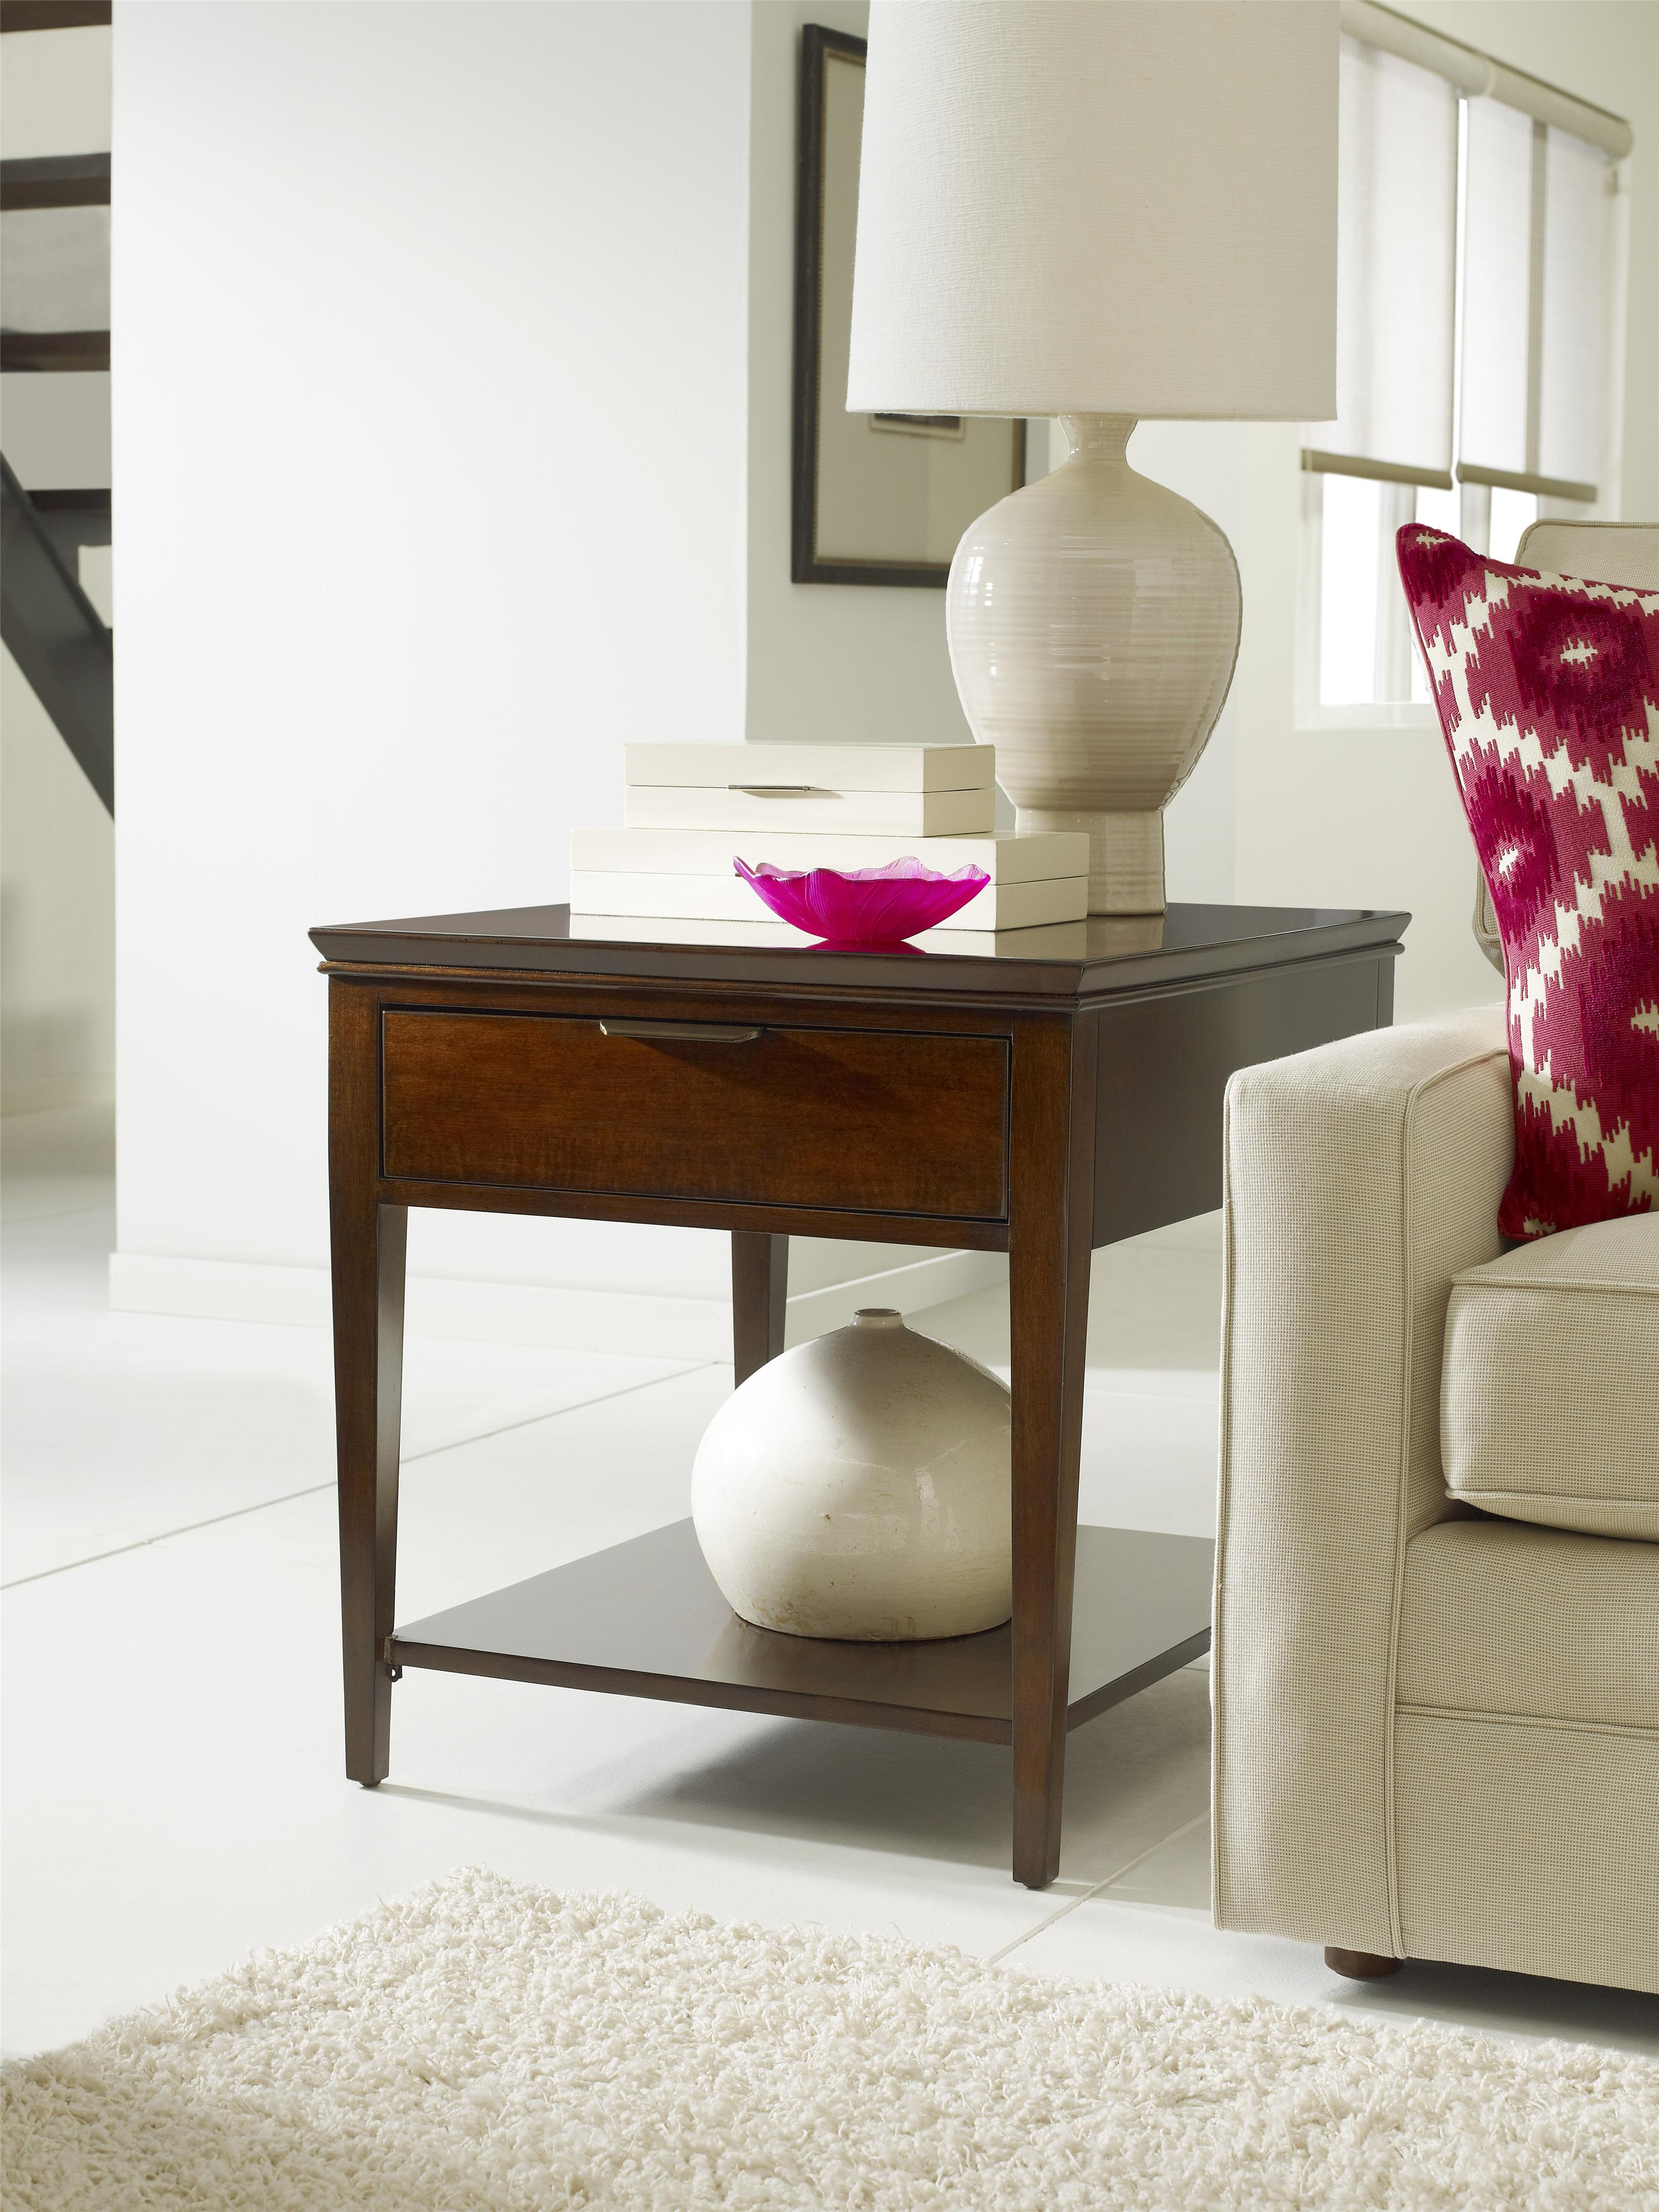 Transitional elise end table with one drawer by kincaid furniture transitional elise end table with one drawer geotapseo Choice Image